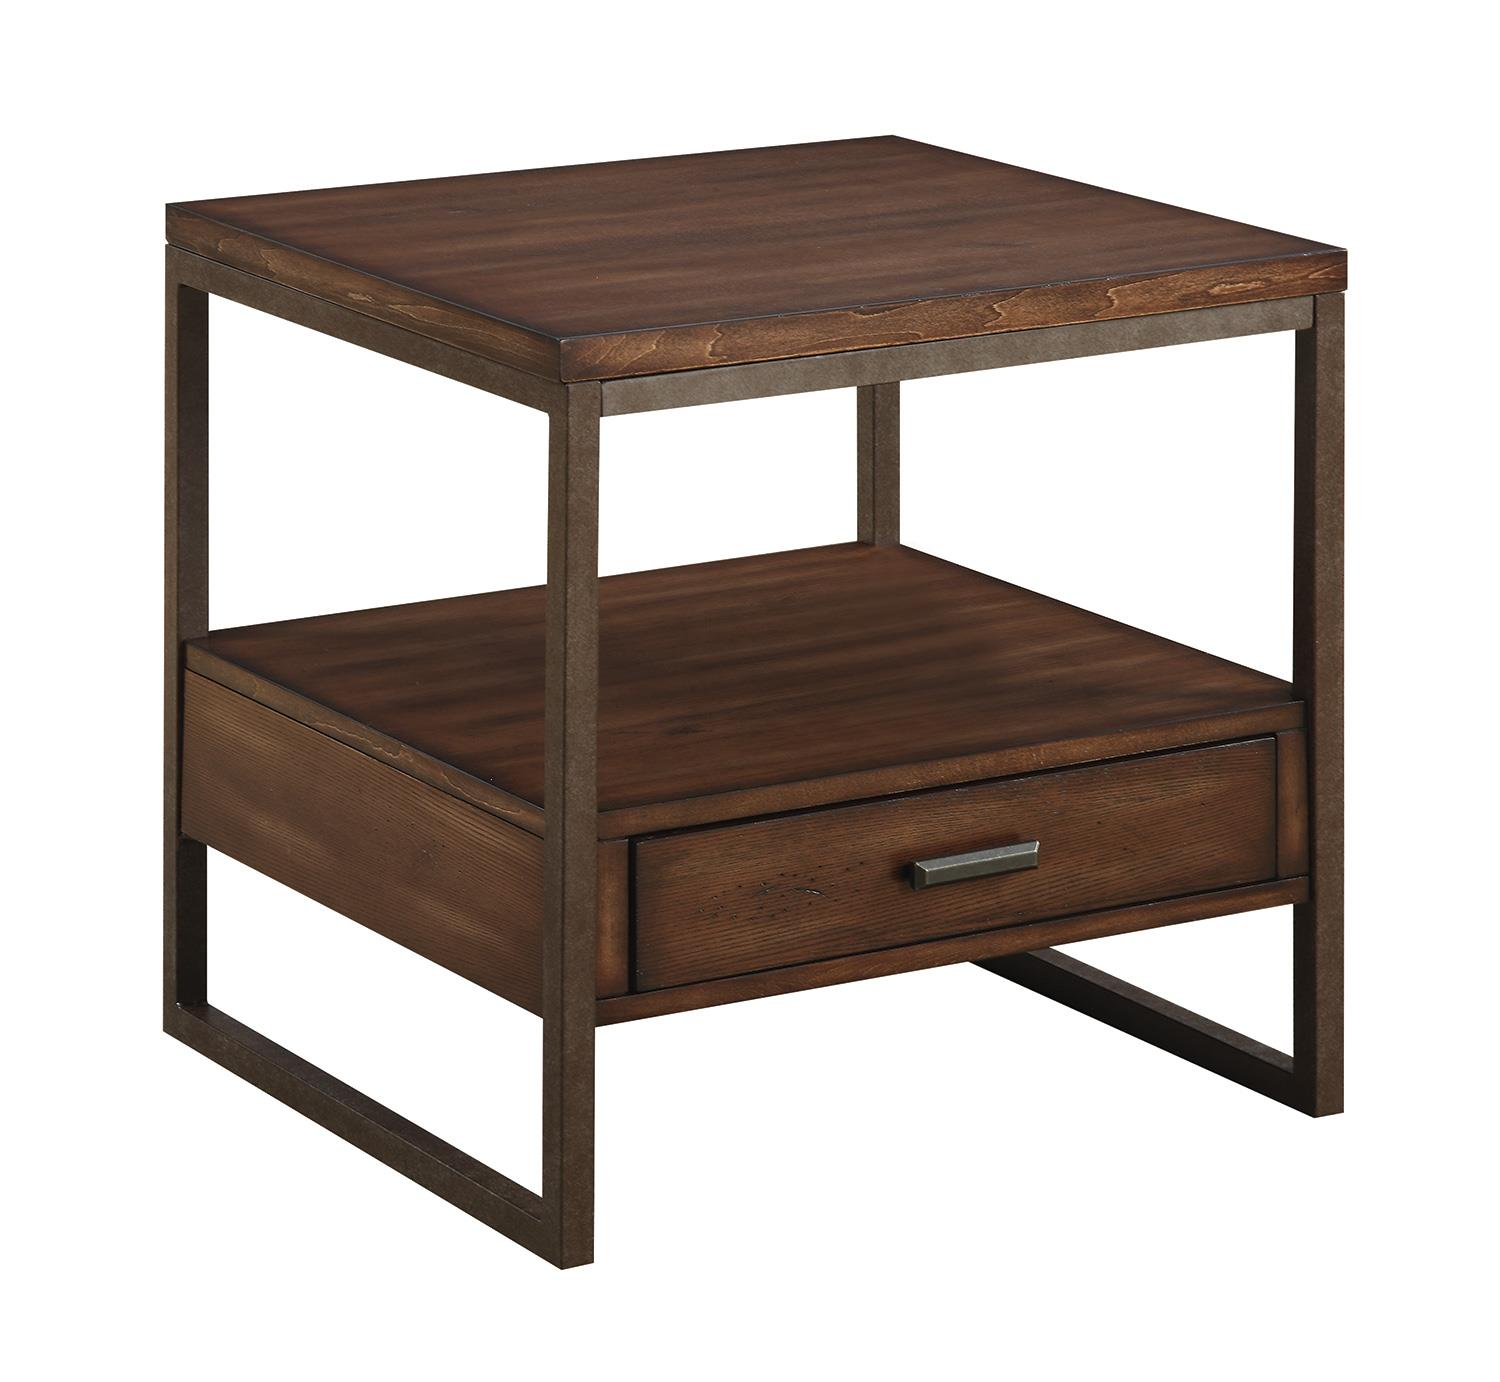 Coaster 70430 End Table - Item Number: 704307